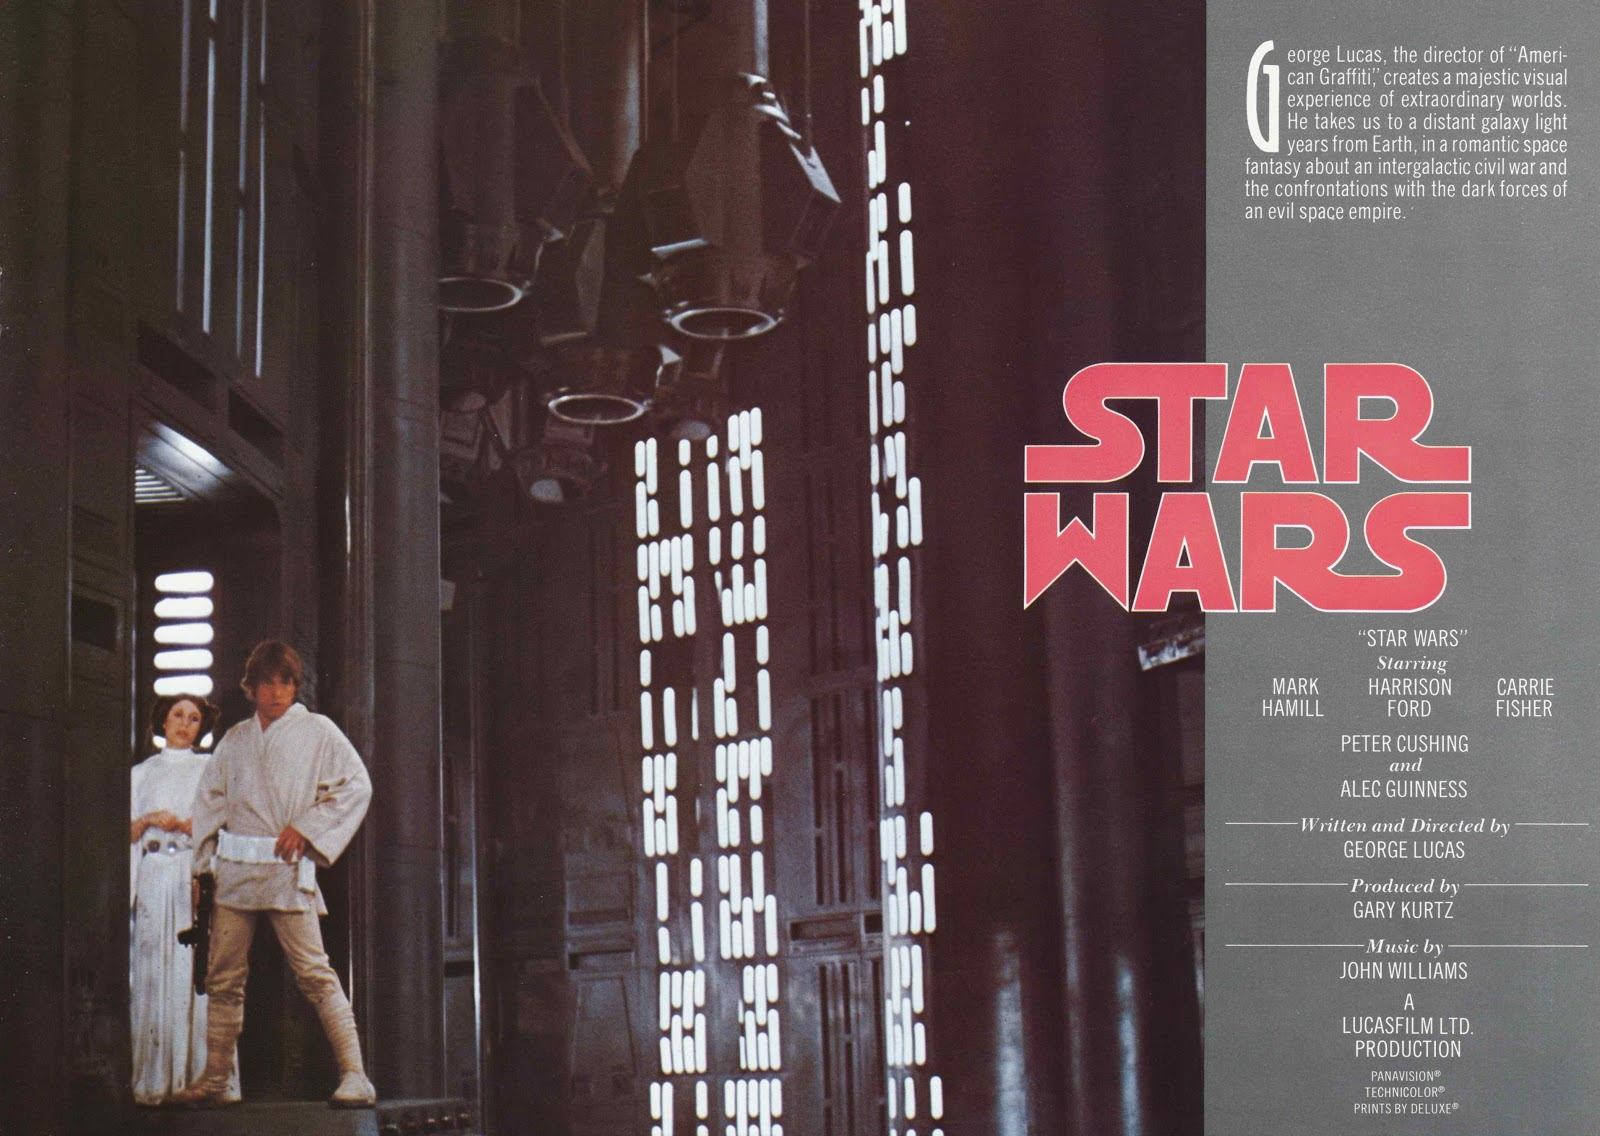 Star Wars 03 Suzy Rice Variety 1977_01_06.jpg